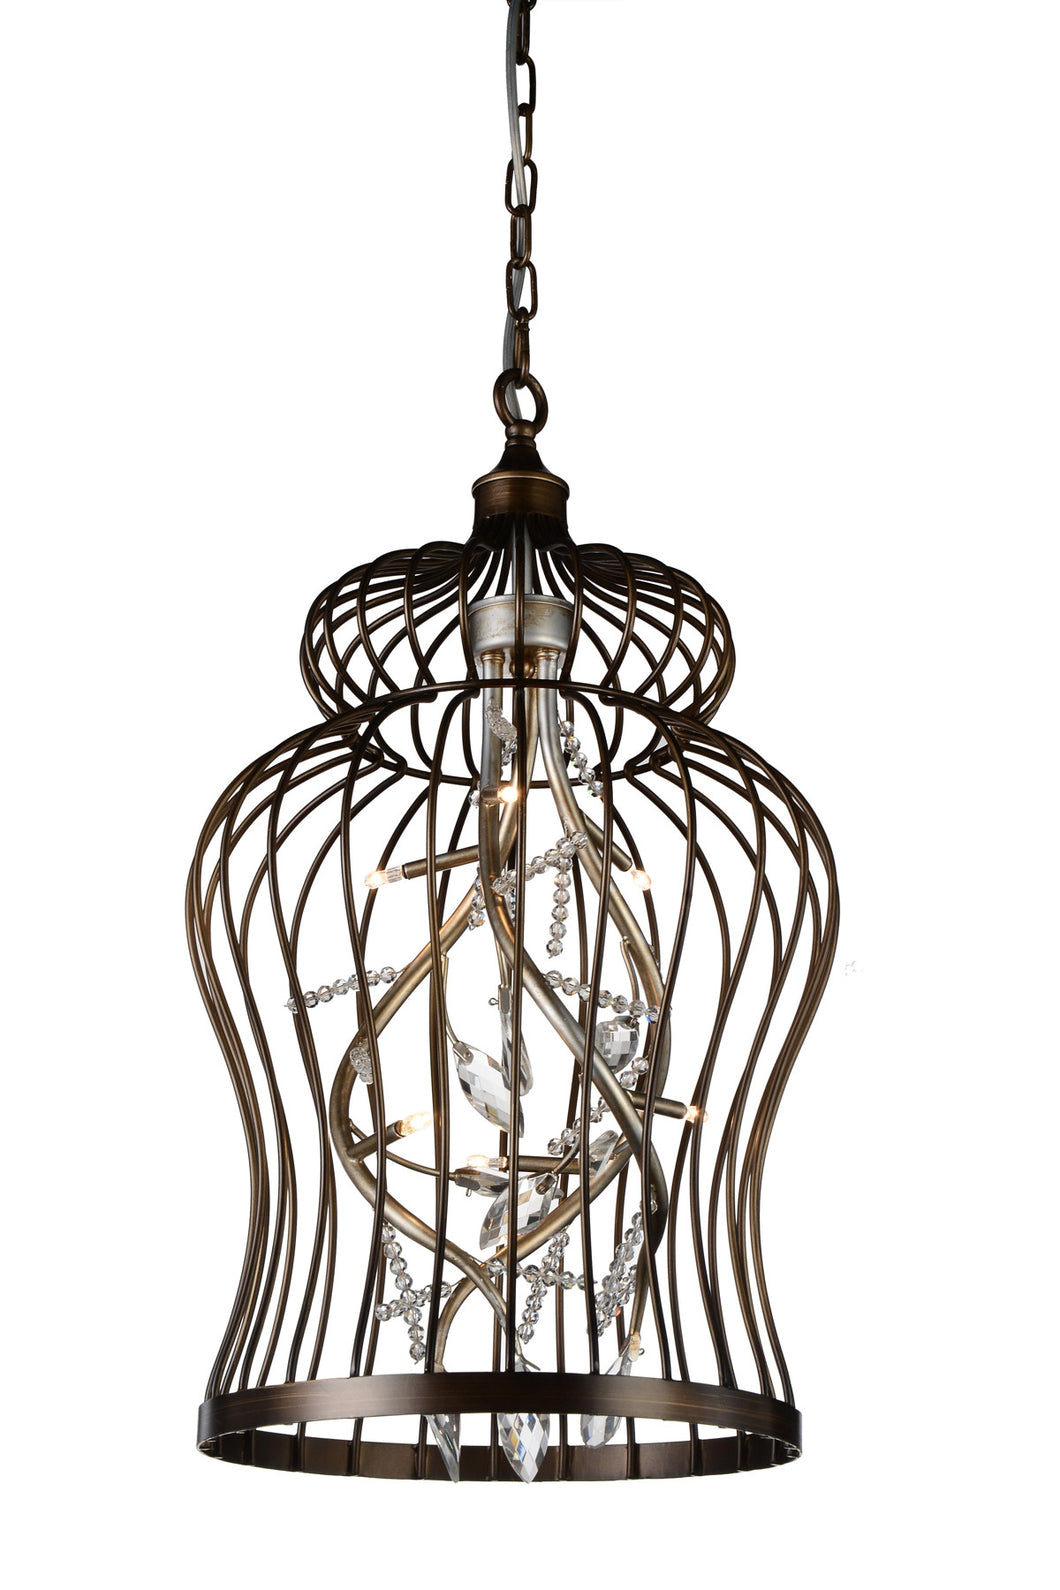 6 Light Down Chandelier with Antique Gold finish